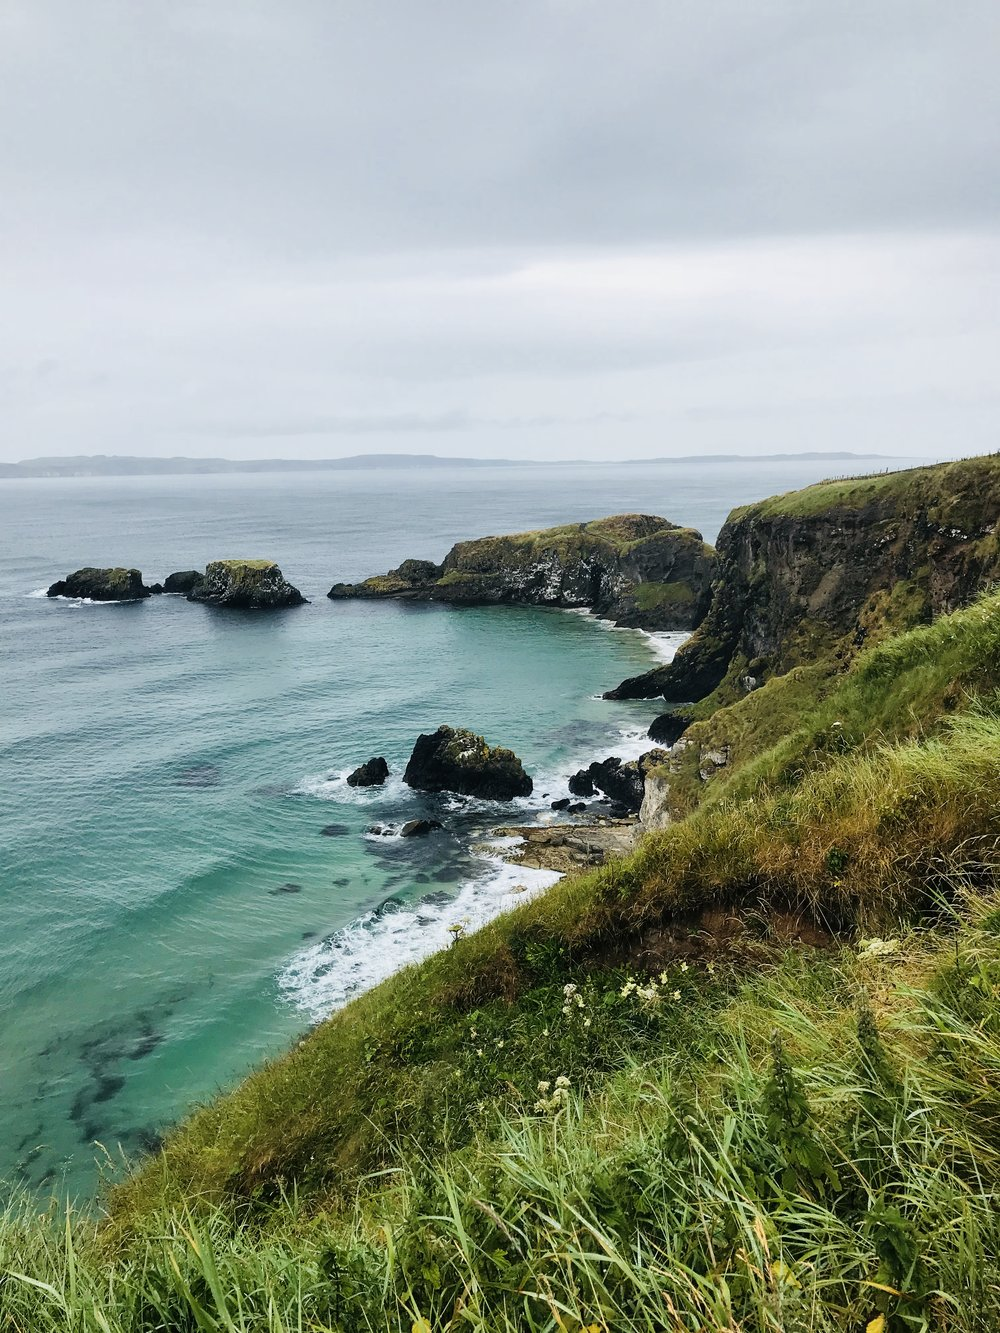 Larrybane Quarry from Carrick-a-Rede